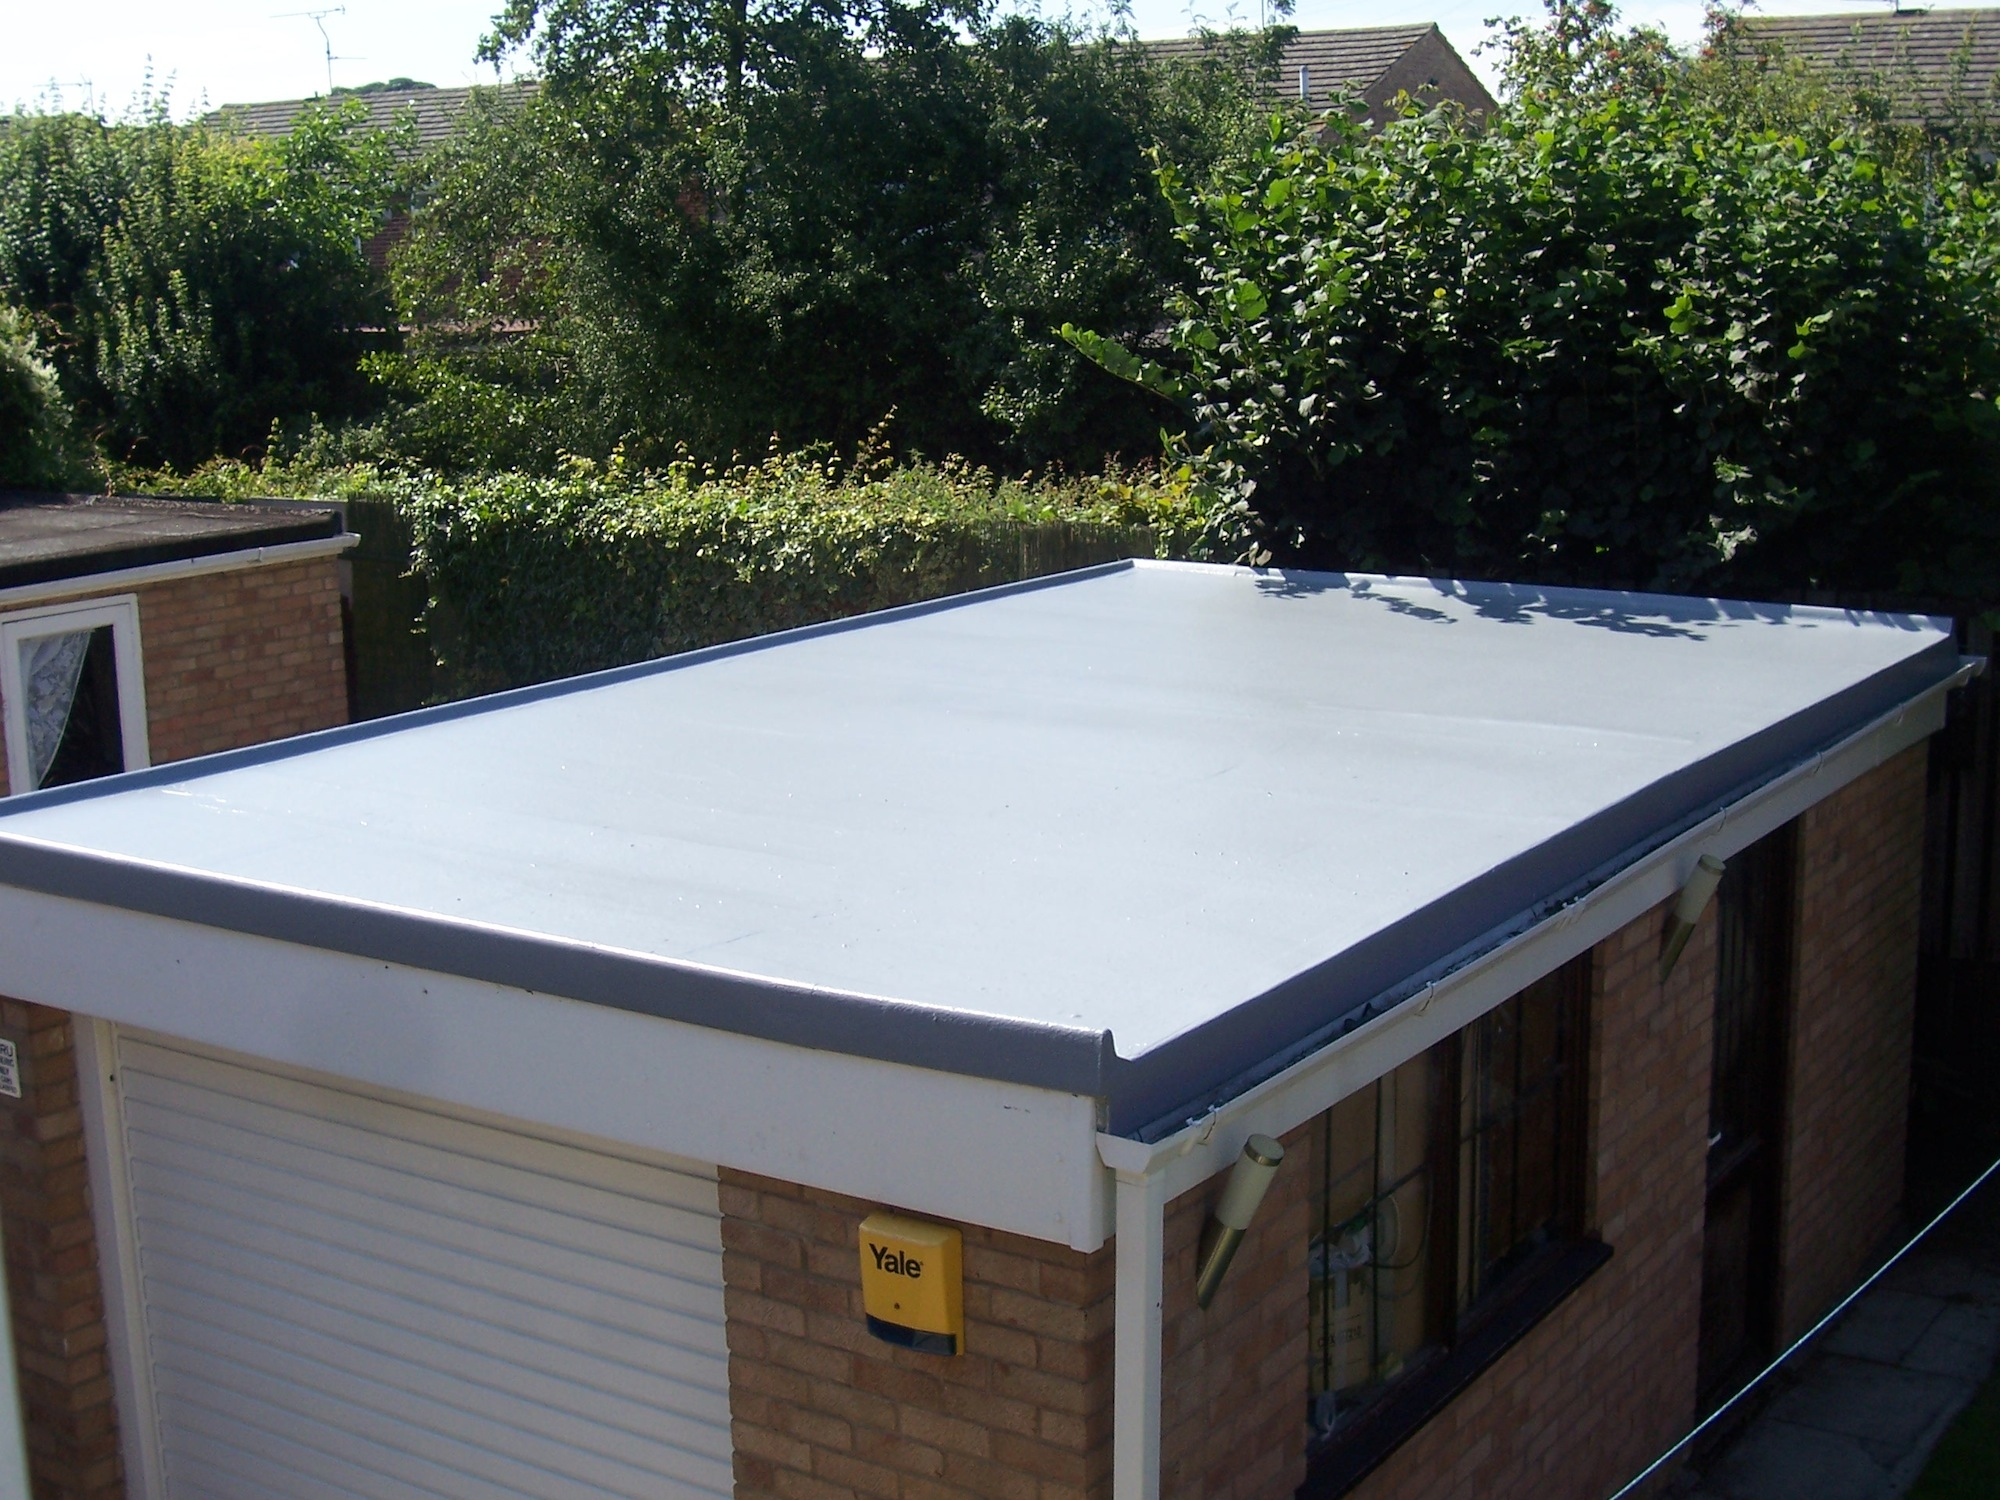 Pggrp fibreglass flat roofing specialists we specialise for Flat roof garage with deck plans